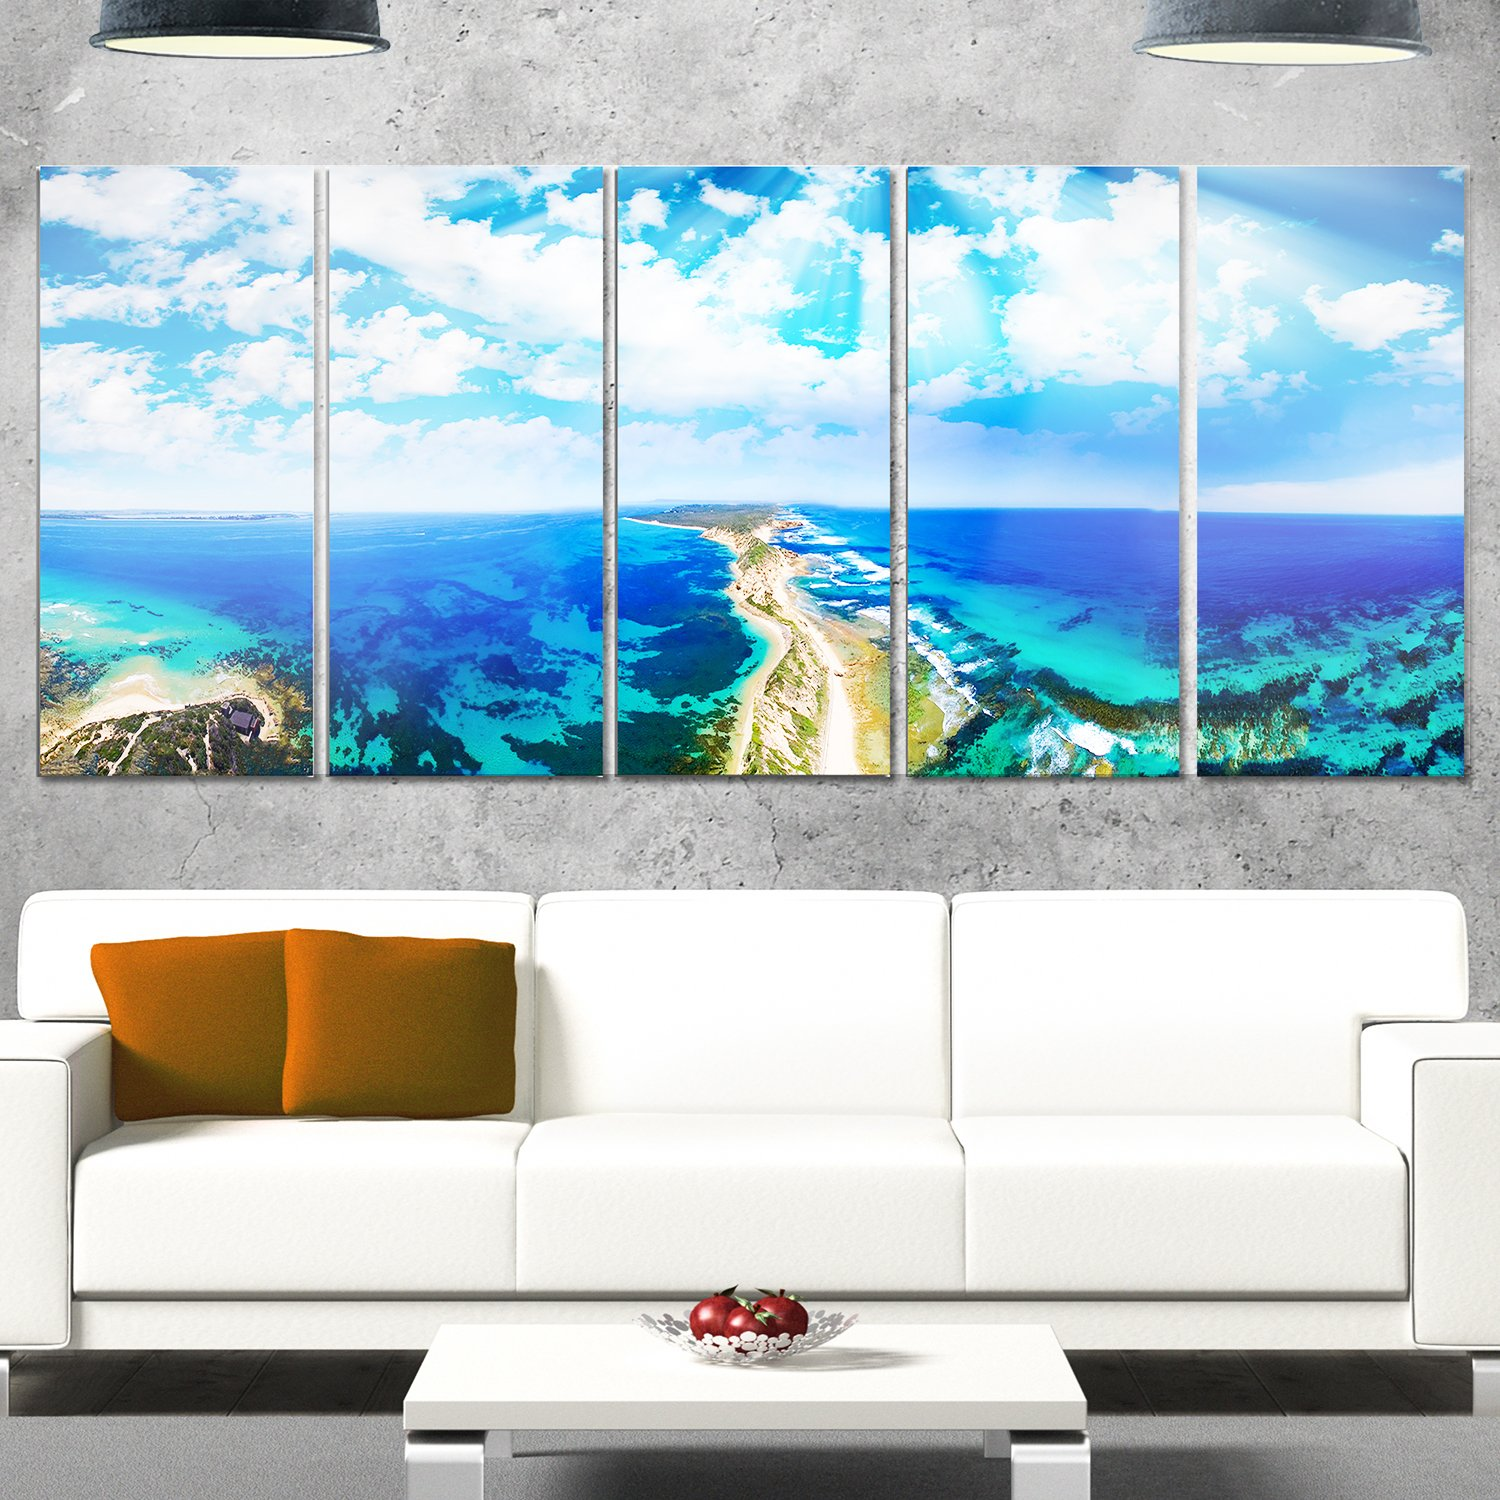 Landscape Glossy Metal Wall Art 60x32-5 Panels Diamond Shape Designart Blue Fort Nepean Road from Helicopter